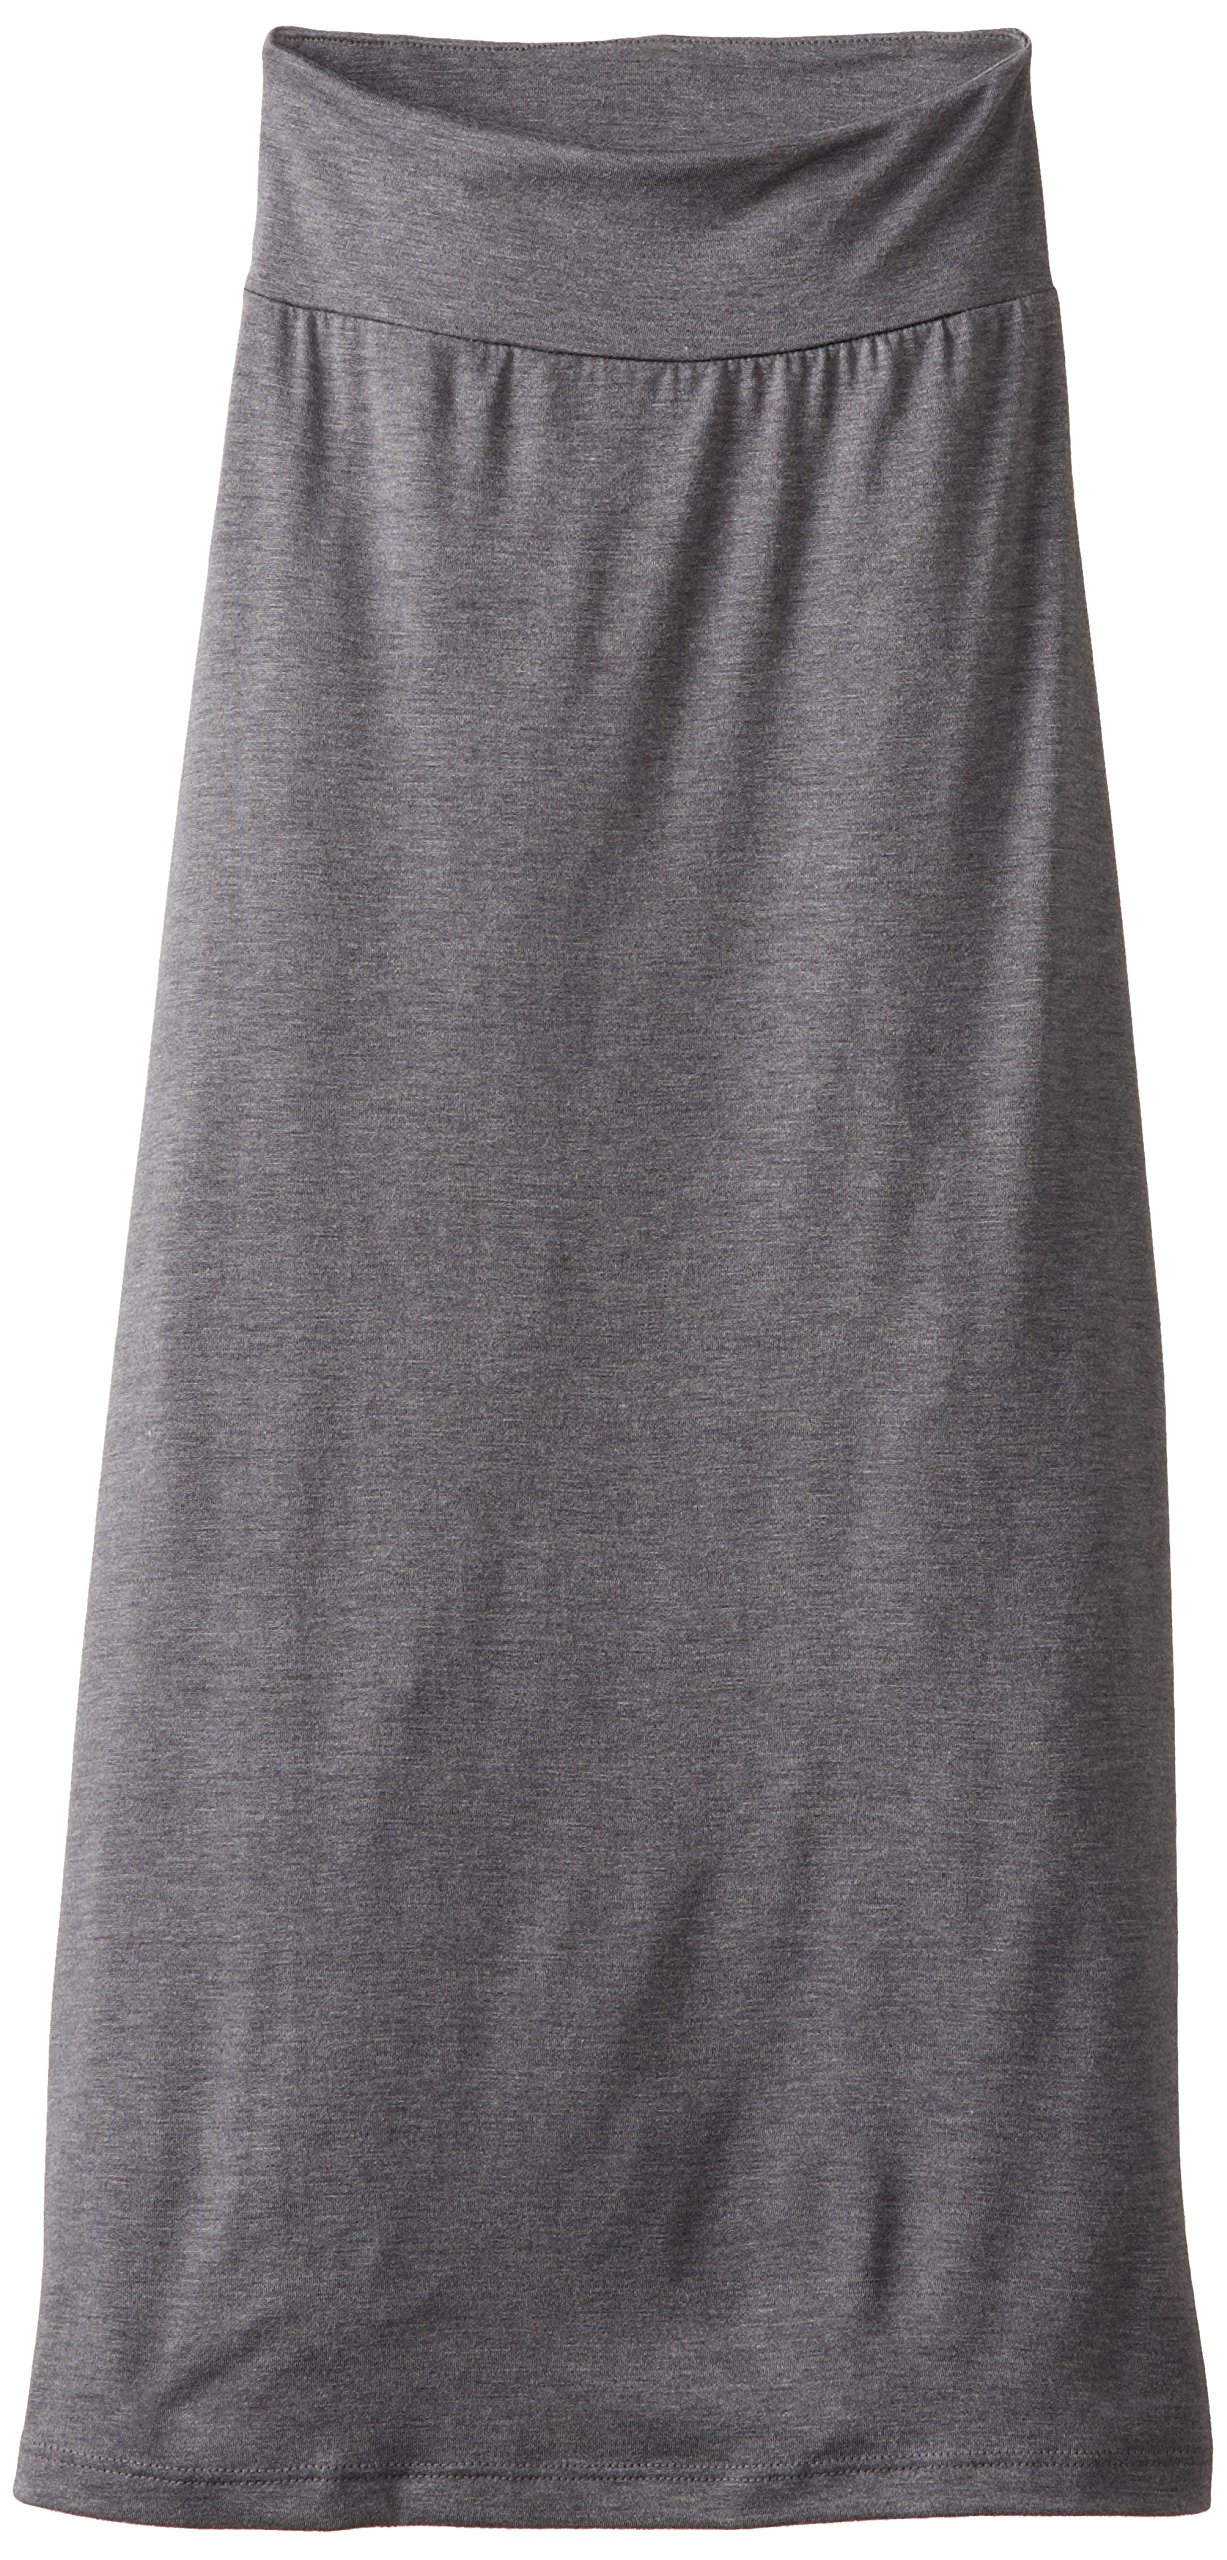 Amy Byer Girls' 7-16 Full-Length Maxi Skirt, Gray, Large by Amy Byer (Image #1)